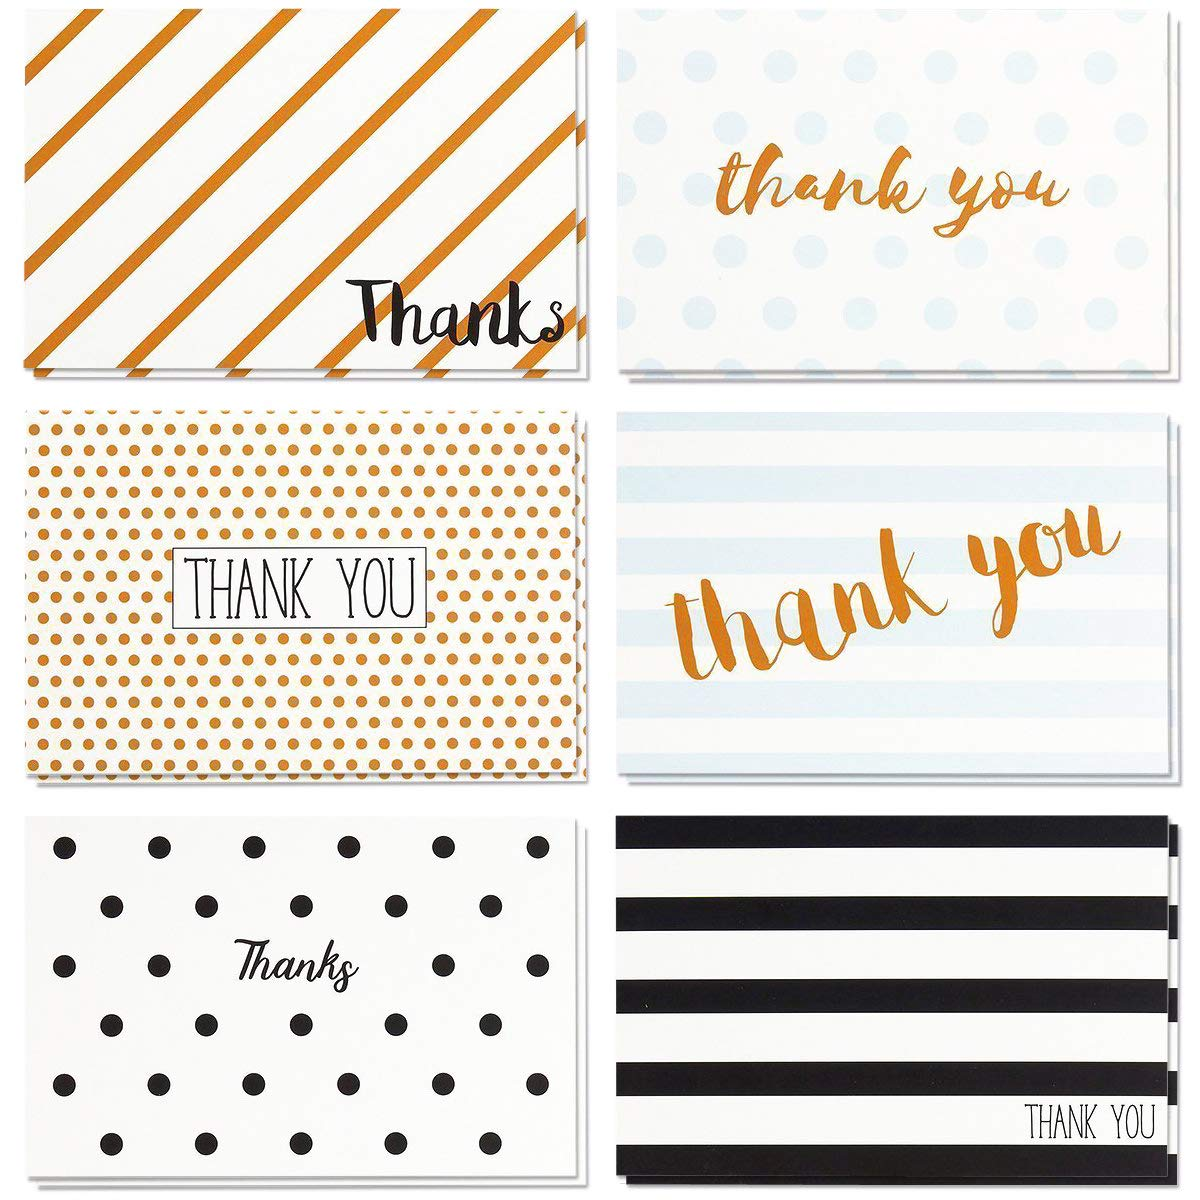 Thank You Cards - 48-Count Thank You Notes, Bulk Thank You Cards Set - Blank on The Inside, Retro Designs - Includes Thank You Cards and Envelopes, 4 x 6 Inches by Juvale